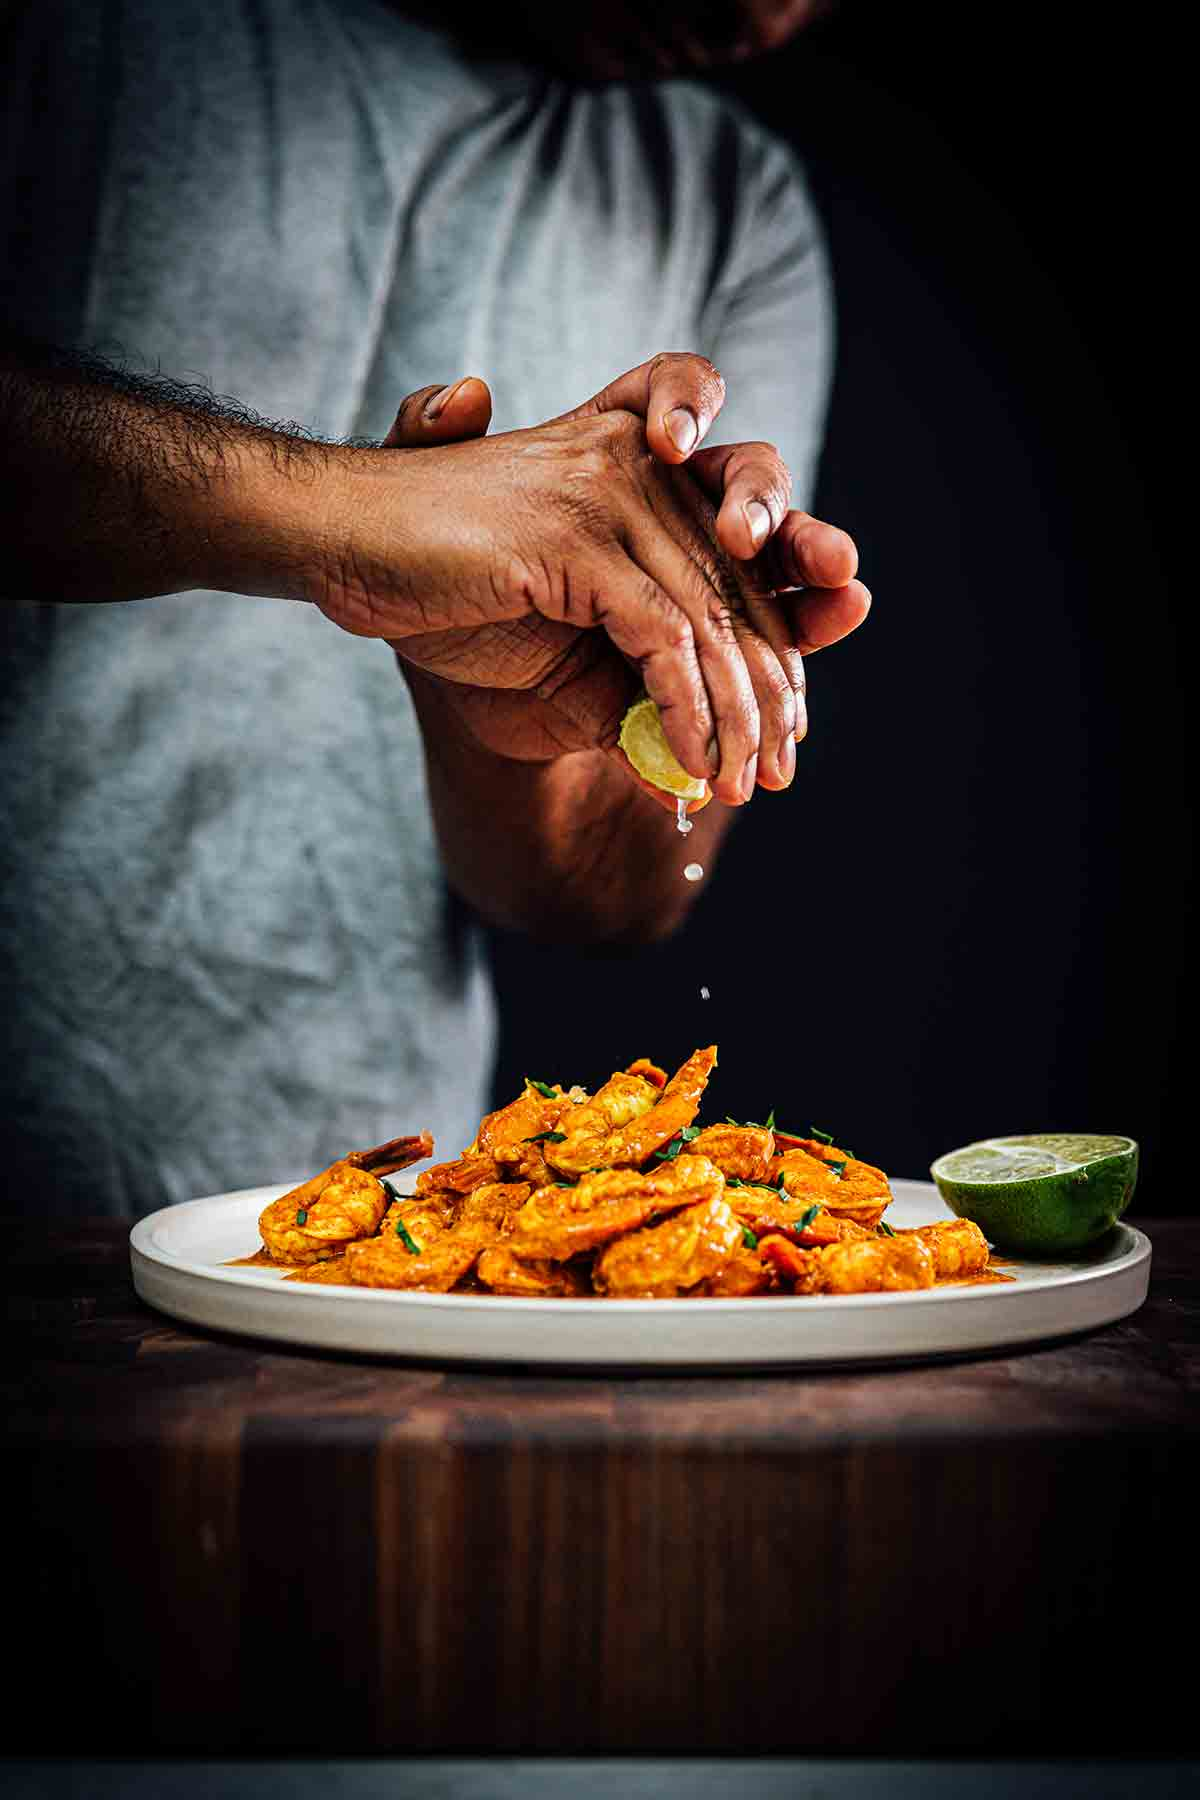 A person squeezing a lime wedge over a plate of masala shrimp.